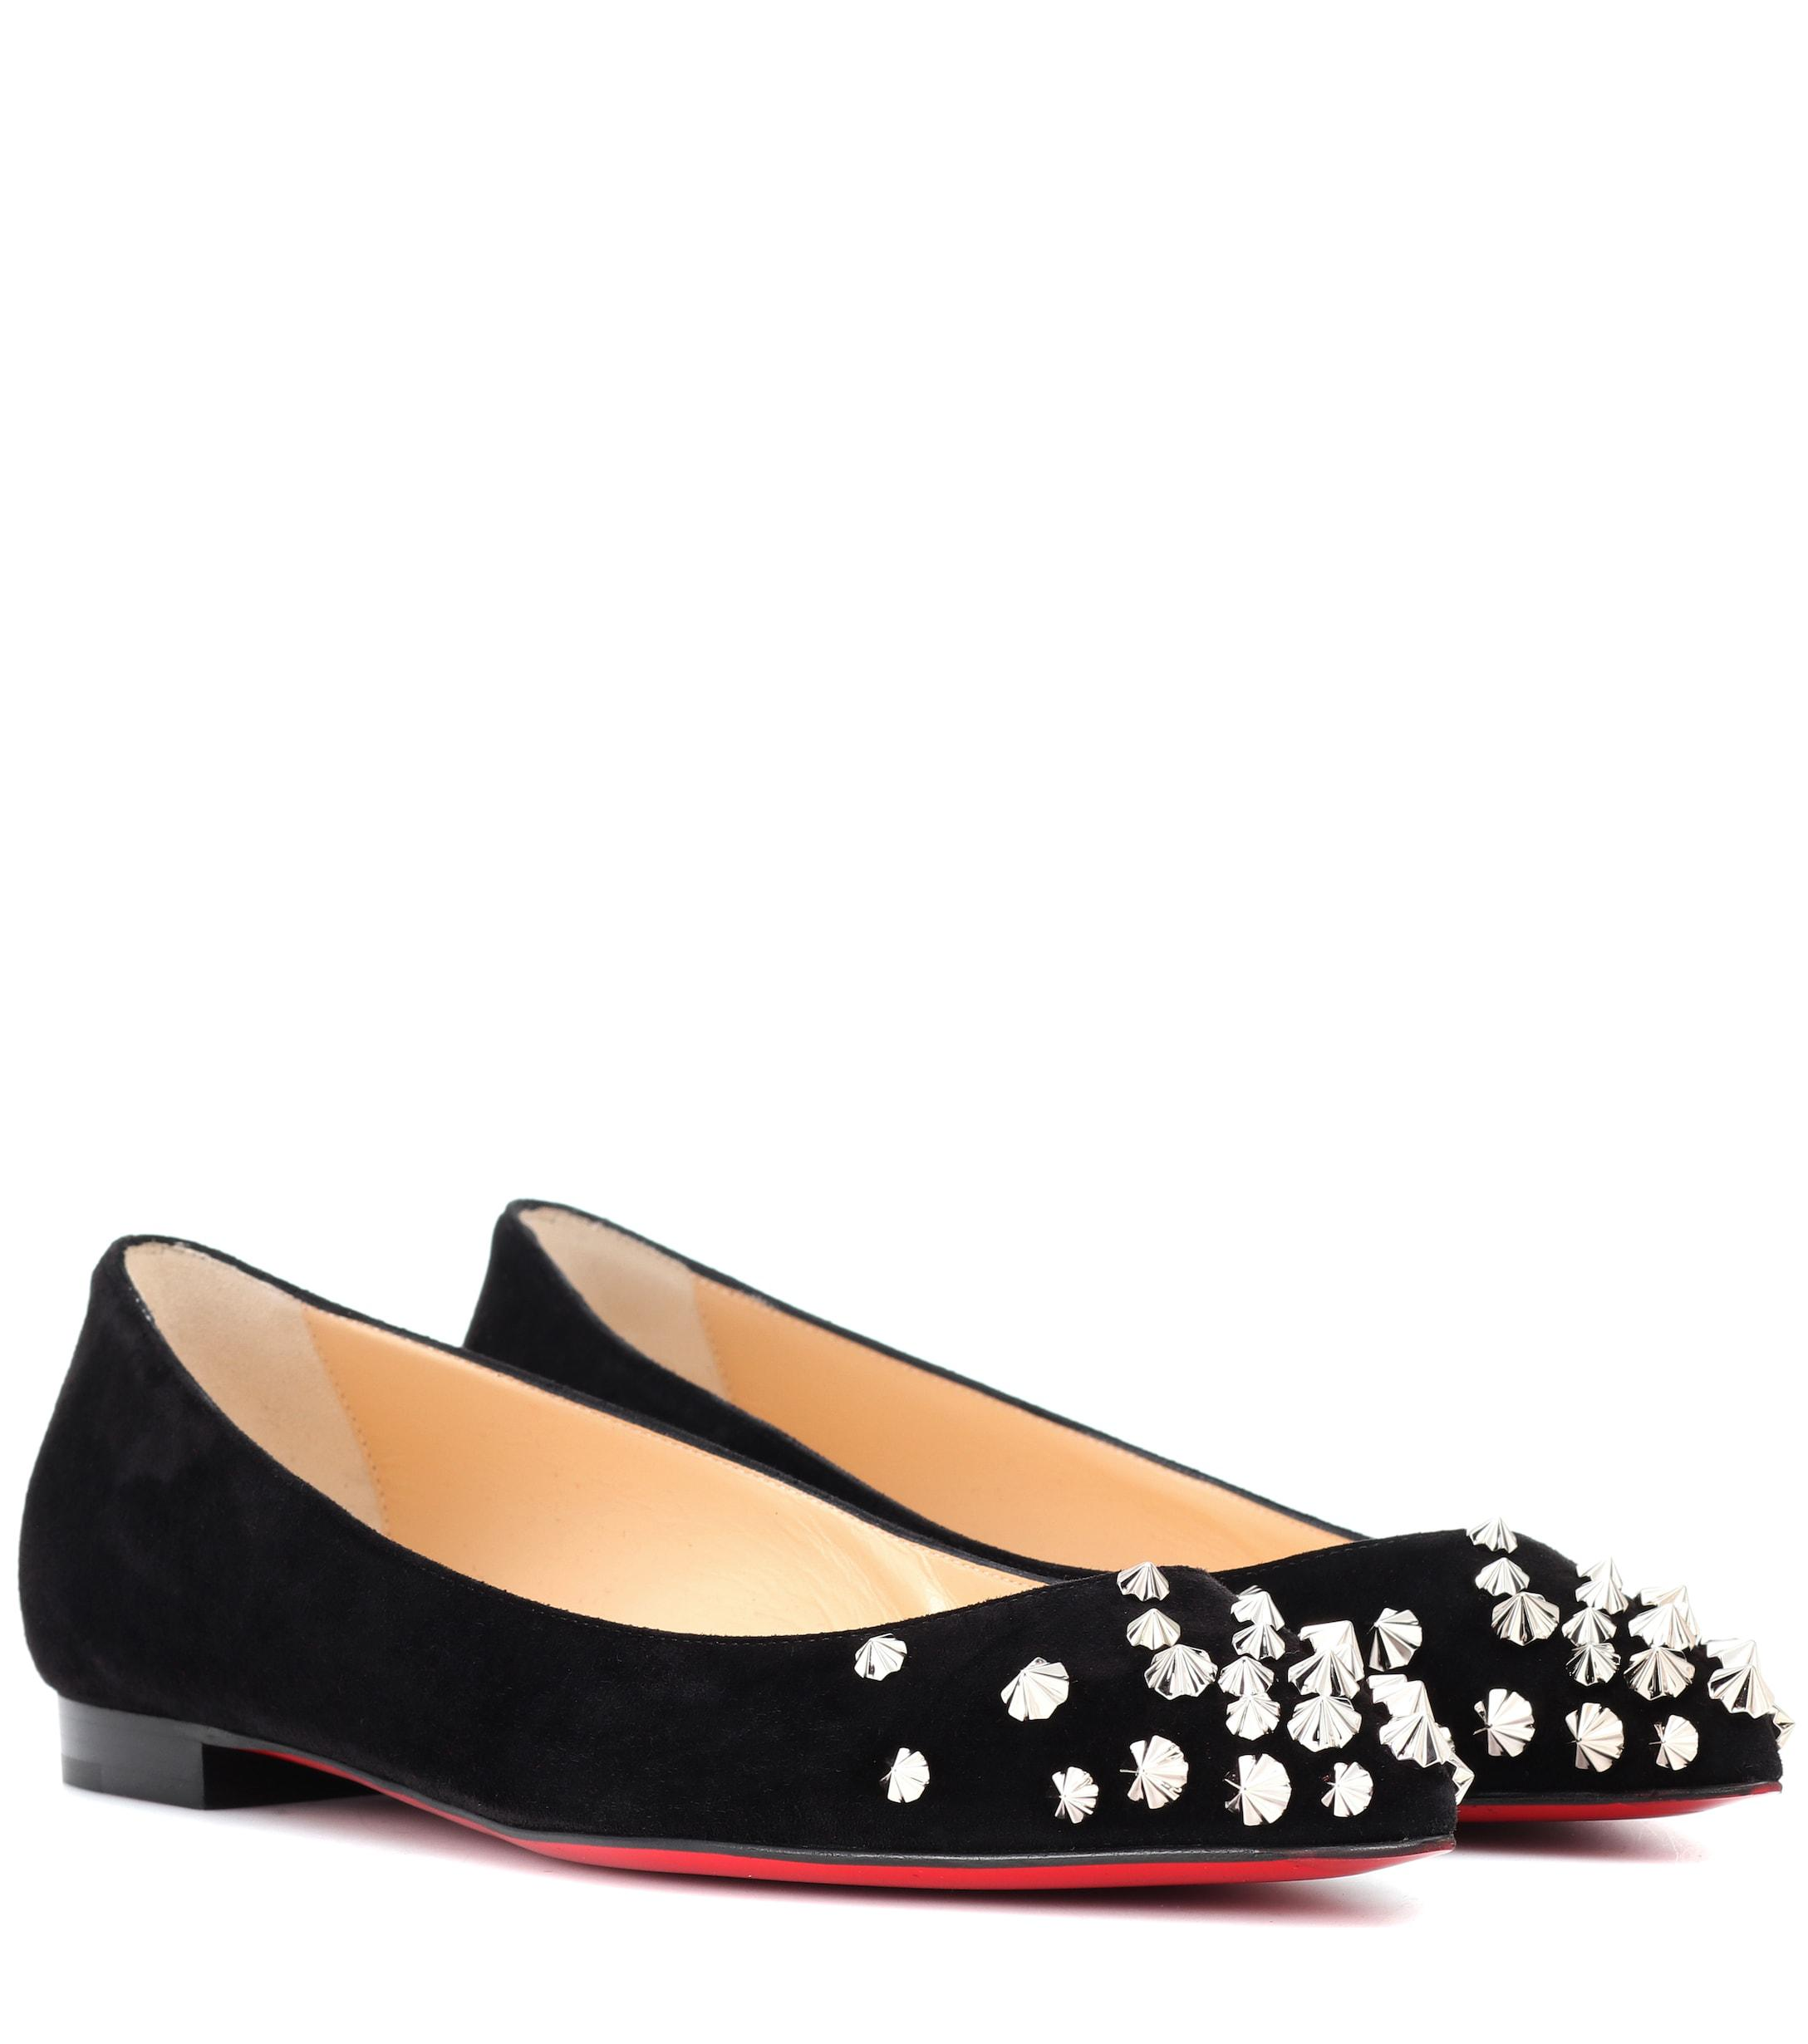 252e2b3310ff Lyst - Christian Louboutin Drama Studded Suede Ballet Flats in Black